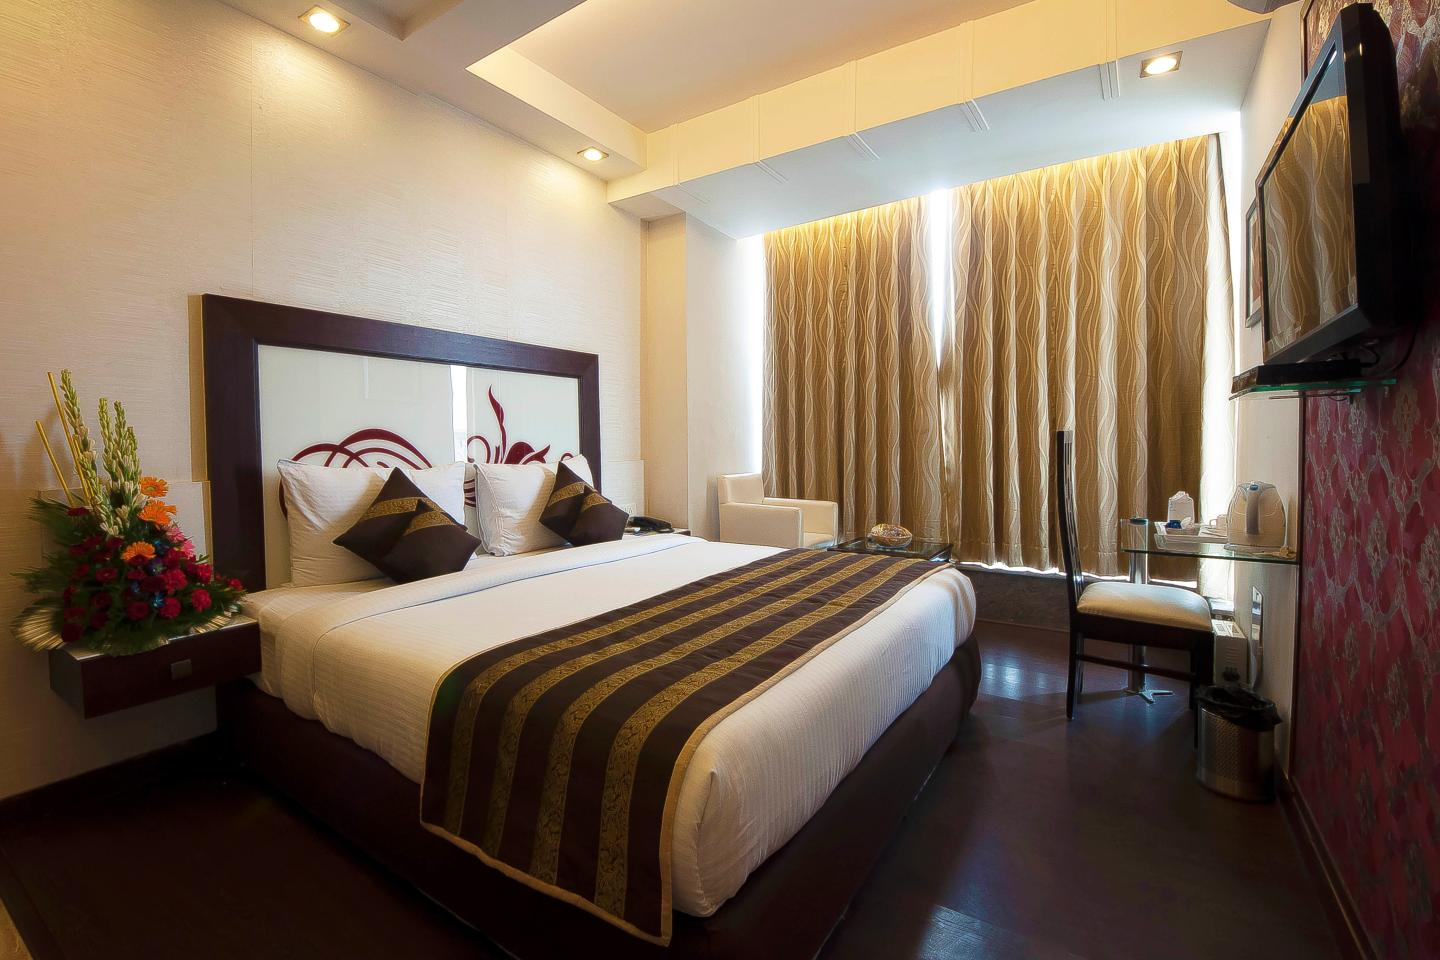 Within an easy reach of Connaught Place, Pitrashish Premium is within a 20-minute drive of tourist hotspots like India Gate, Red Fort and National Agricultural Science Museum. Catering to the needs of business travellers, the property offers meeting facility and free high-speed Wi-Fi access. The ho tel offers 24 guestrooms that are exquisitely furnished with dark tone furniture and have distinct interiors. Work desk, LCD TV with cable connection, telephone, individually controlled air conditioning and tea/coffee maker are the common in-room amenities. Attached bathrooms are provided with hot and cold water and toiletries. Avail the services offered by the well-informed travel desk of the hotel and get acquainted with diverse facets of the national capital of India. In addition, 24-hour room service, laundry, parking area and free Wi-Fi service are also provided by the hotel.